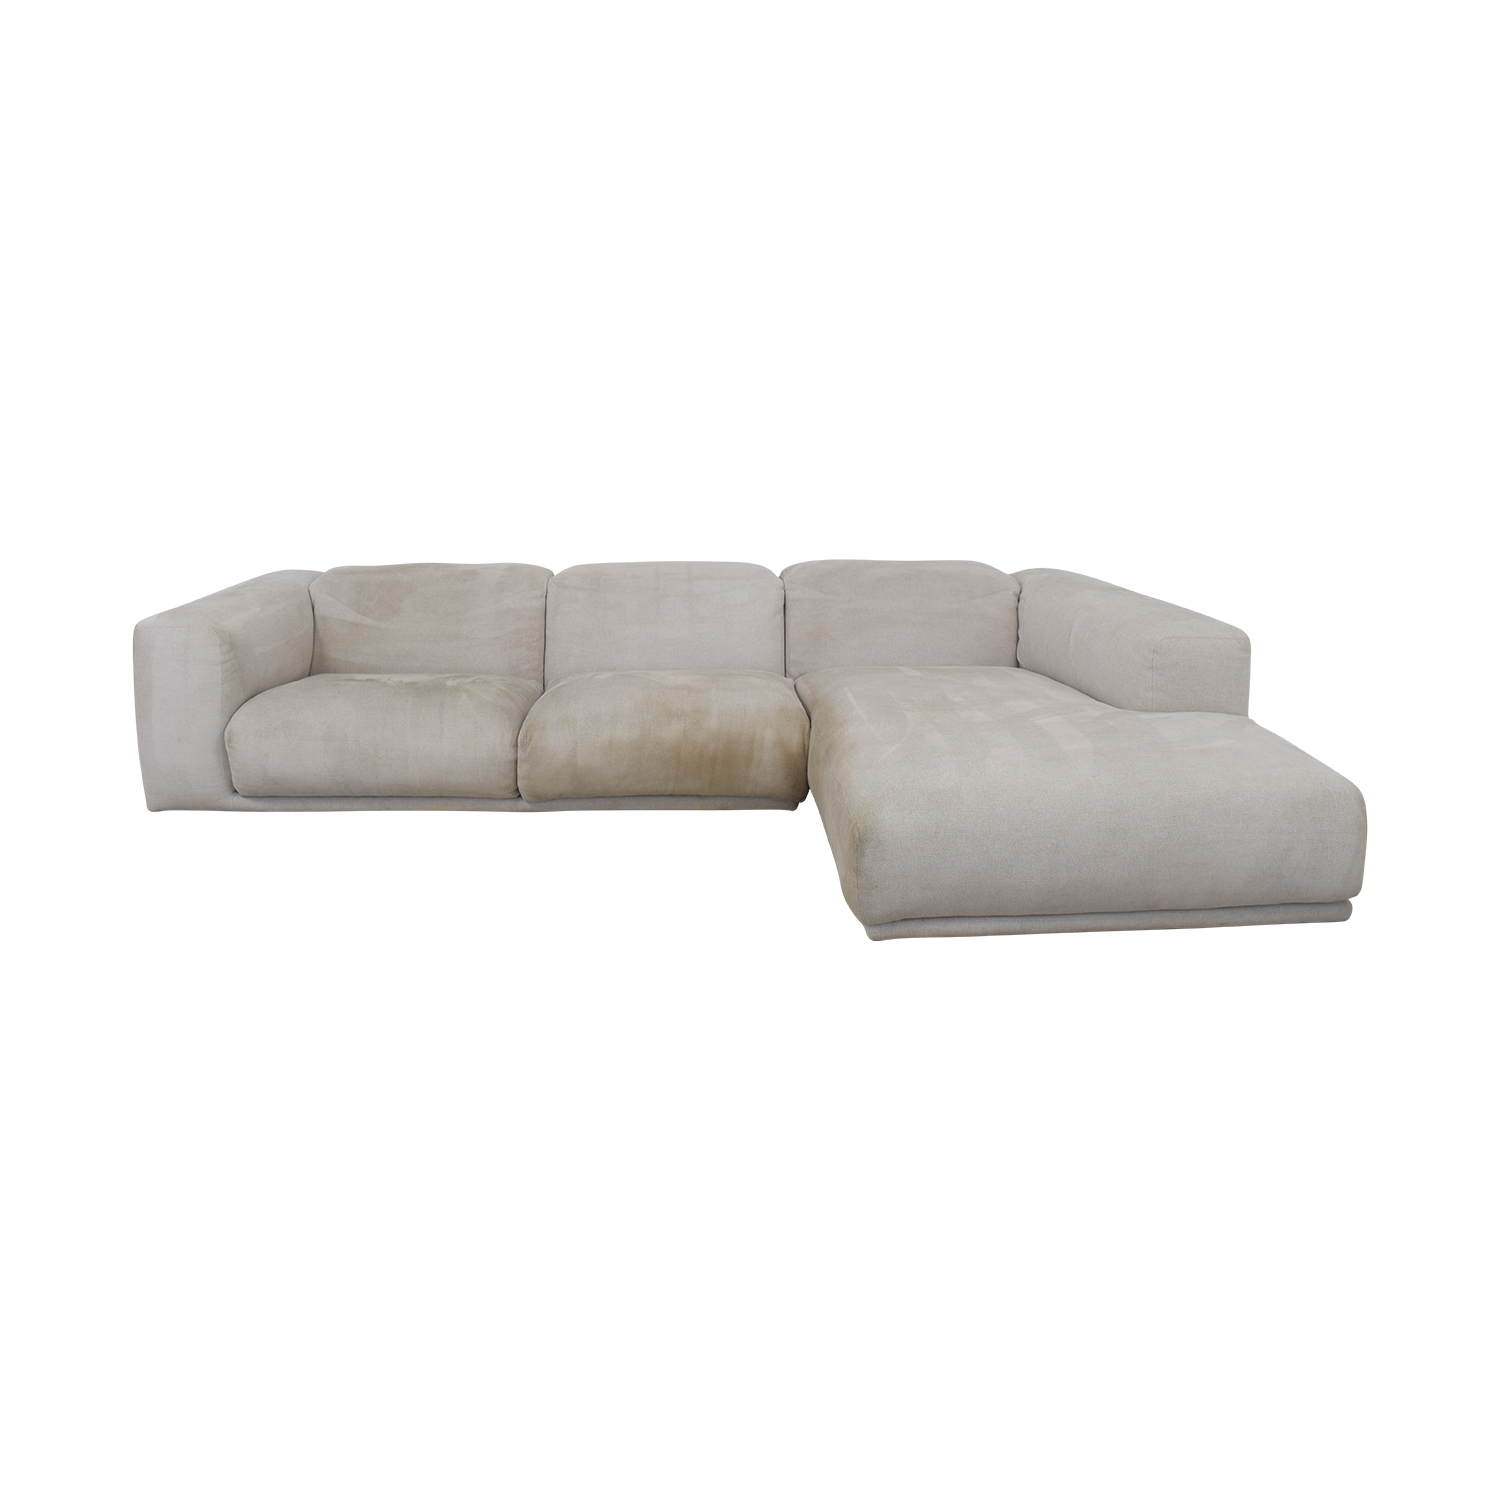 Design Within Reach Design Within Reach Kelston Sectional with Chaise on sale